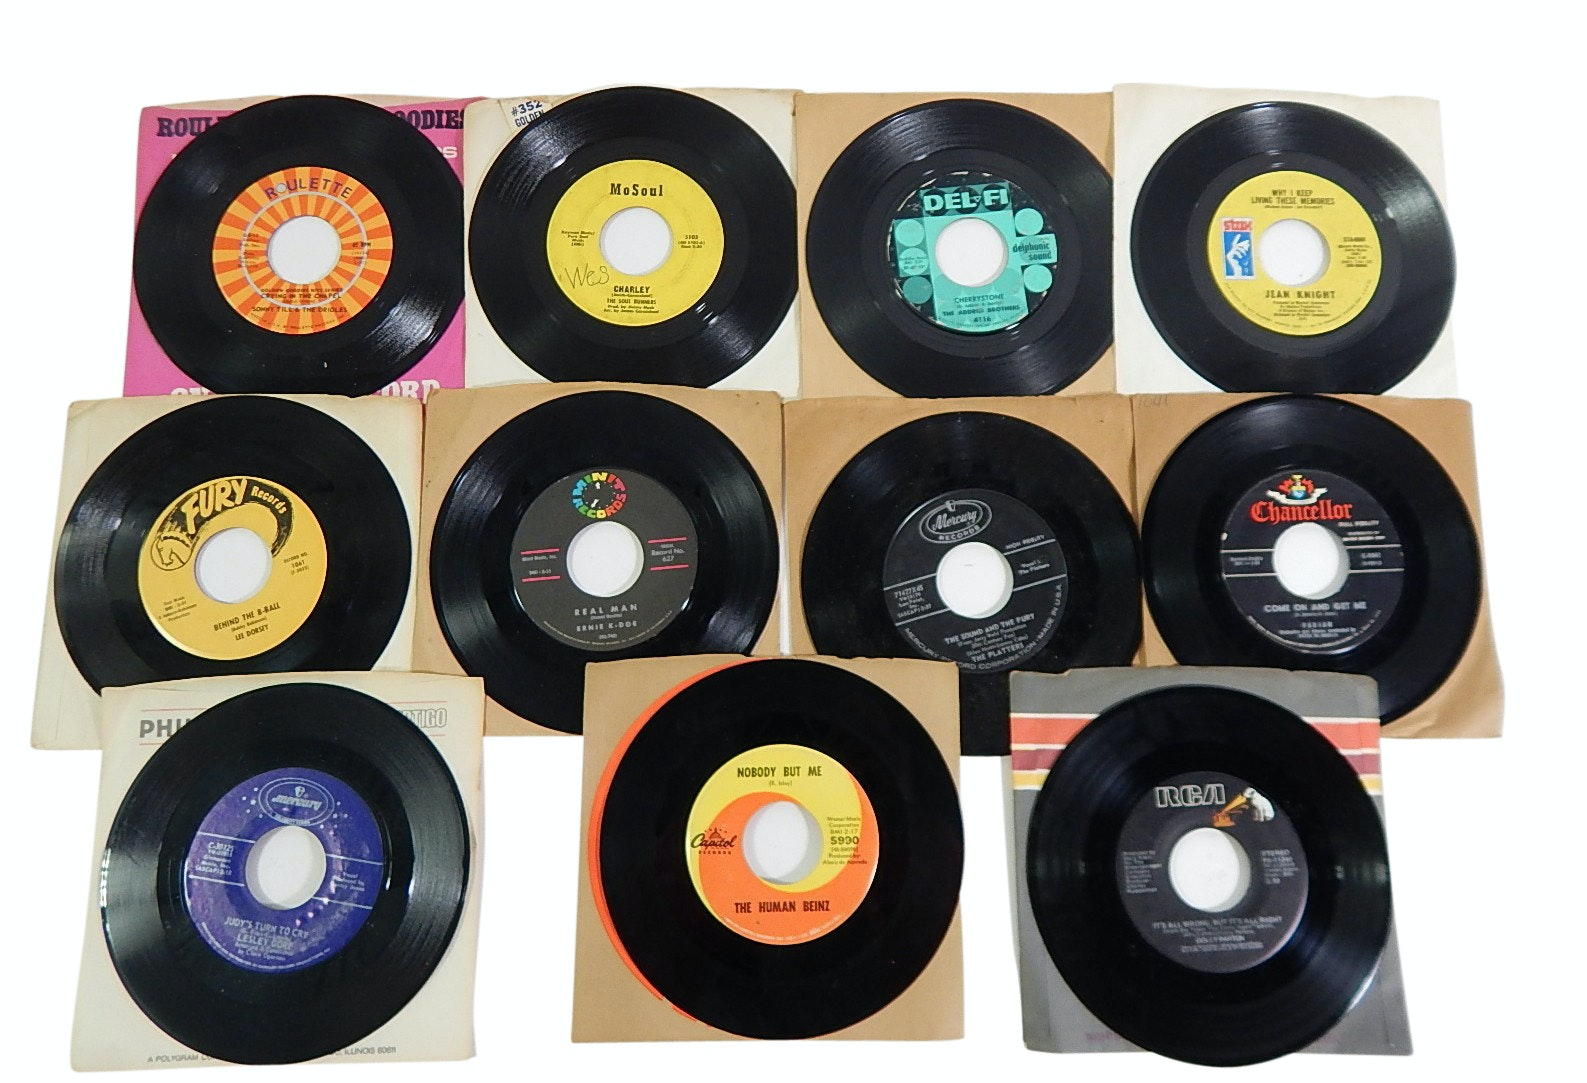 Collection of 1960s/70s 45 RPM Record Albums with Country, Rock, Pop, and R&B